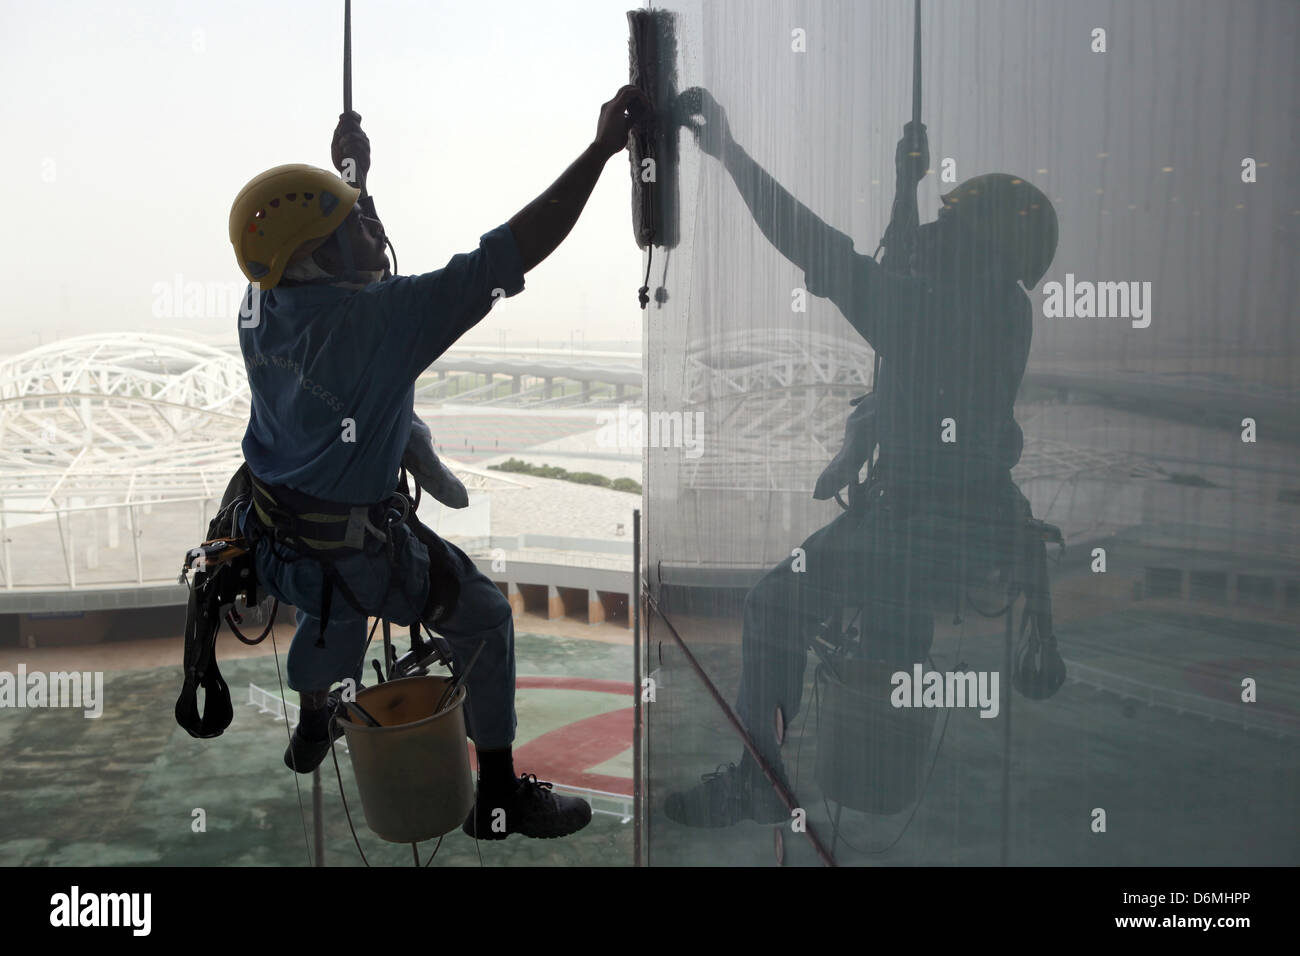 Dubai, United Arab Emirates, window cleaners at work on a glass facade Stock Photo